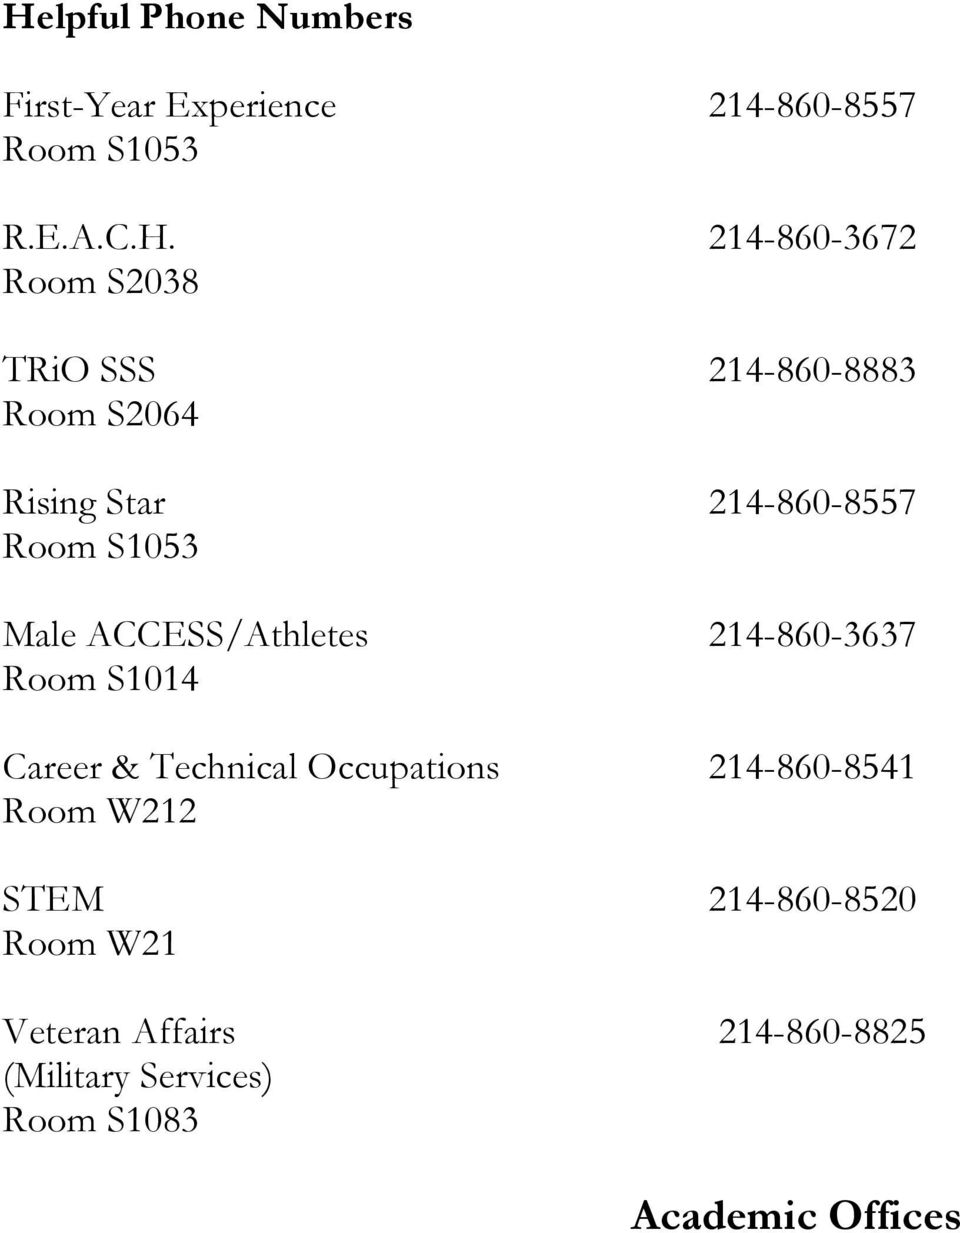 ACCESS/Athletes 214-860-3637 Room S1014 Career & Technical Occupations 214-860-8541 Room W212